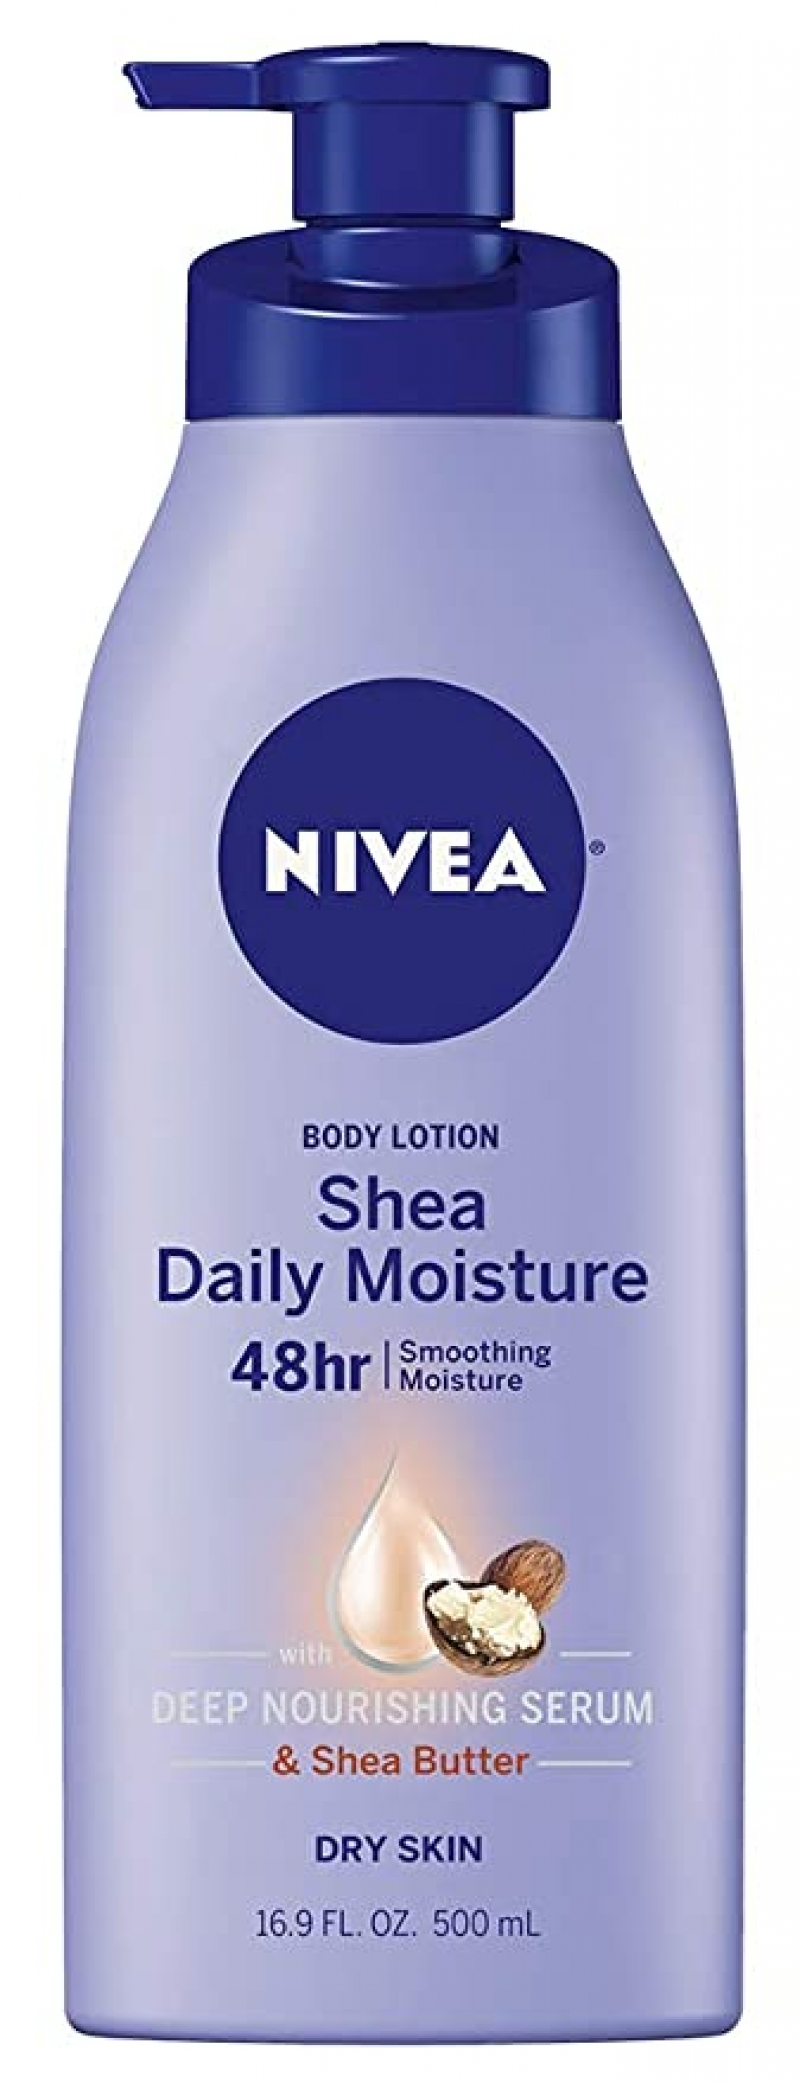 ihocon: NIVEA Shea Daily Moisture Body Lotion 16.9 fl. oz. 保濕身體乳